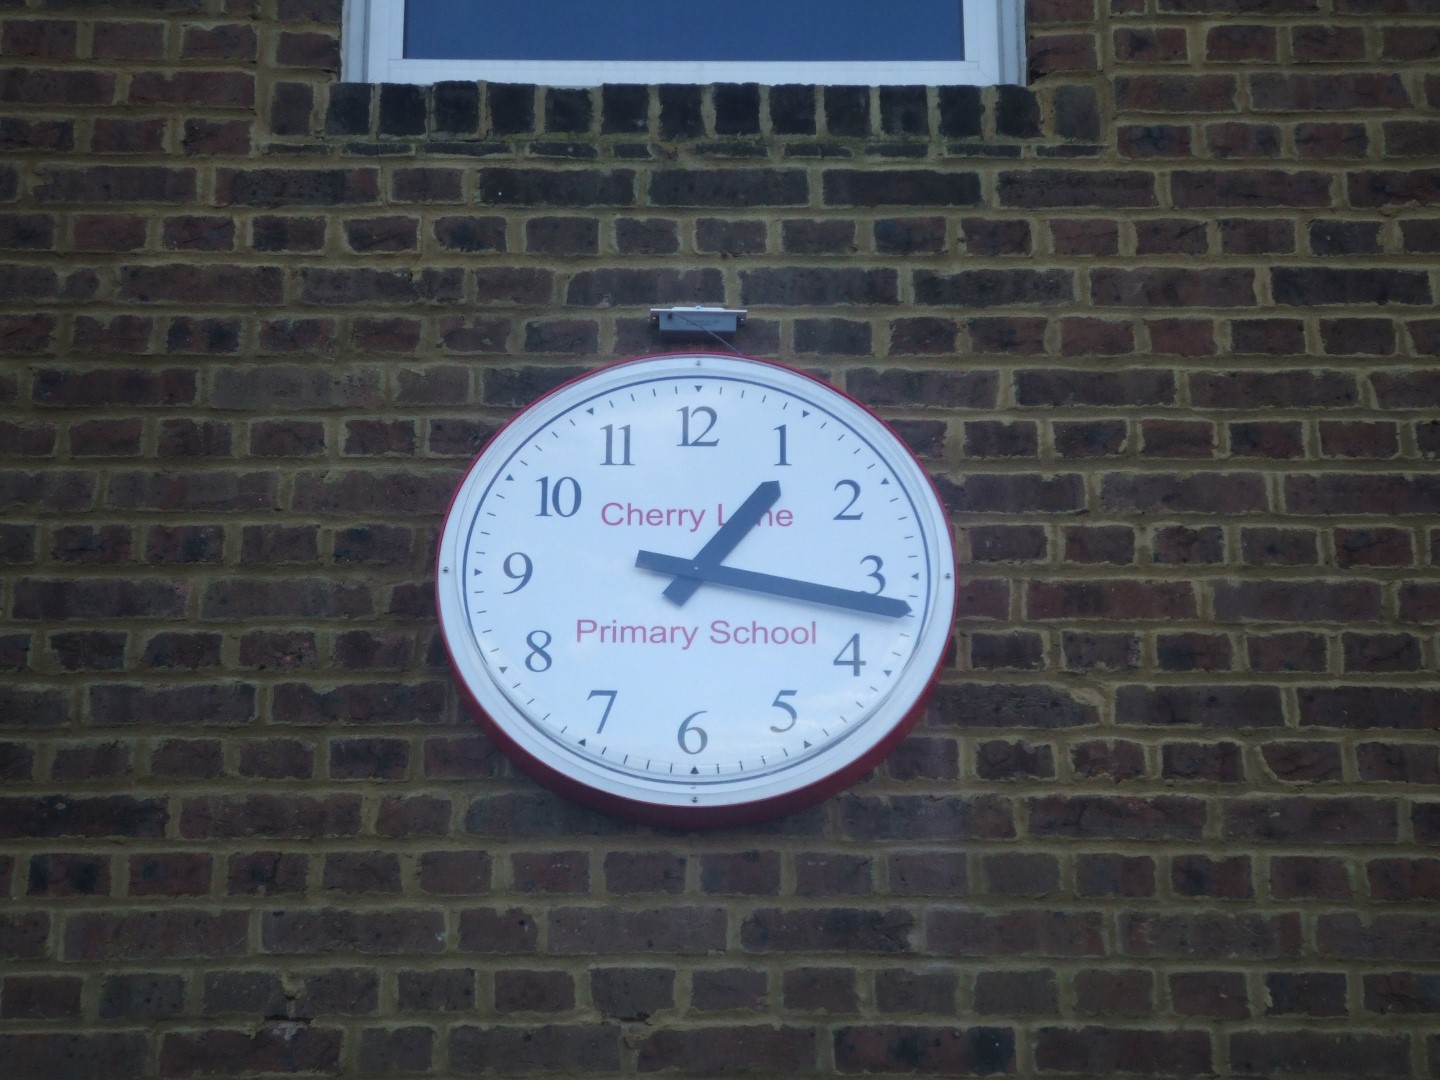 School playground clocks